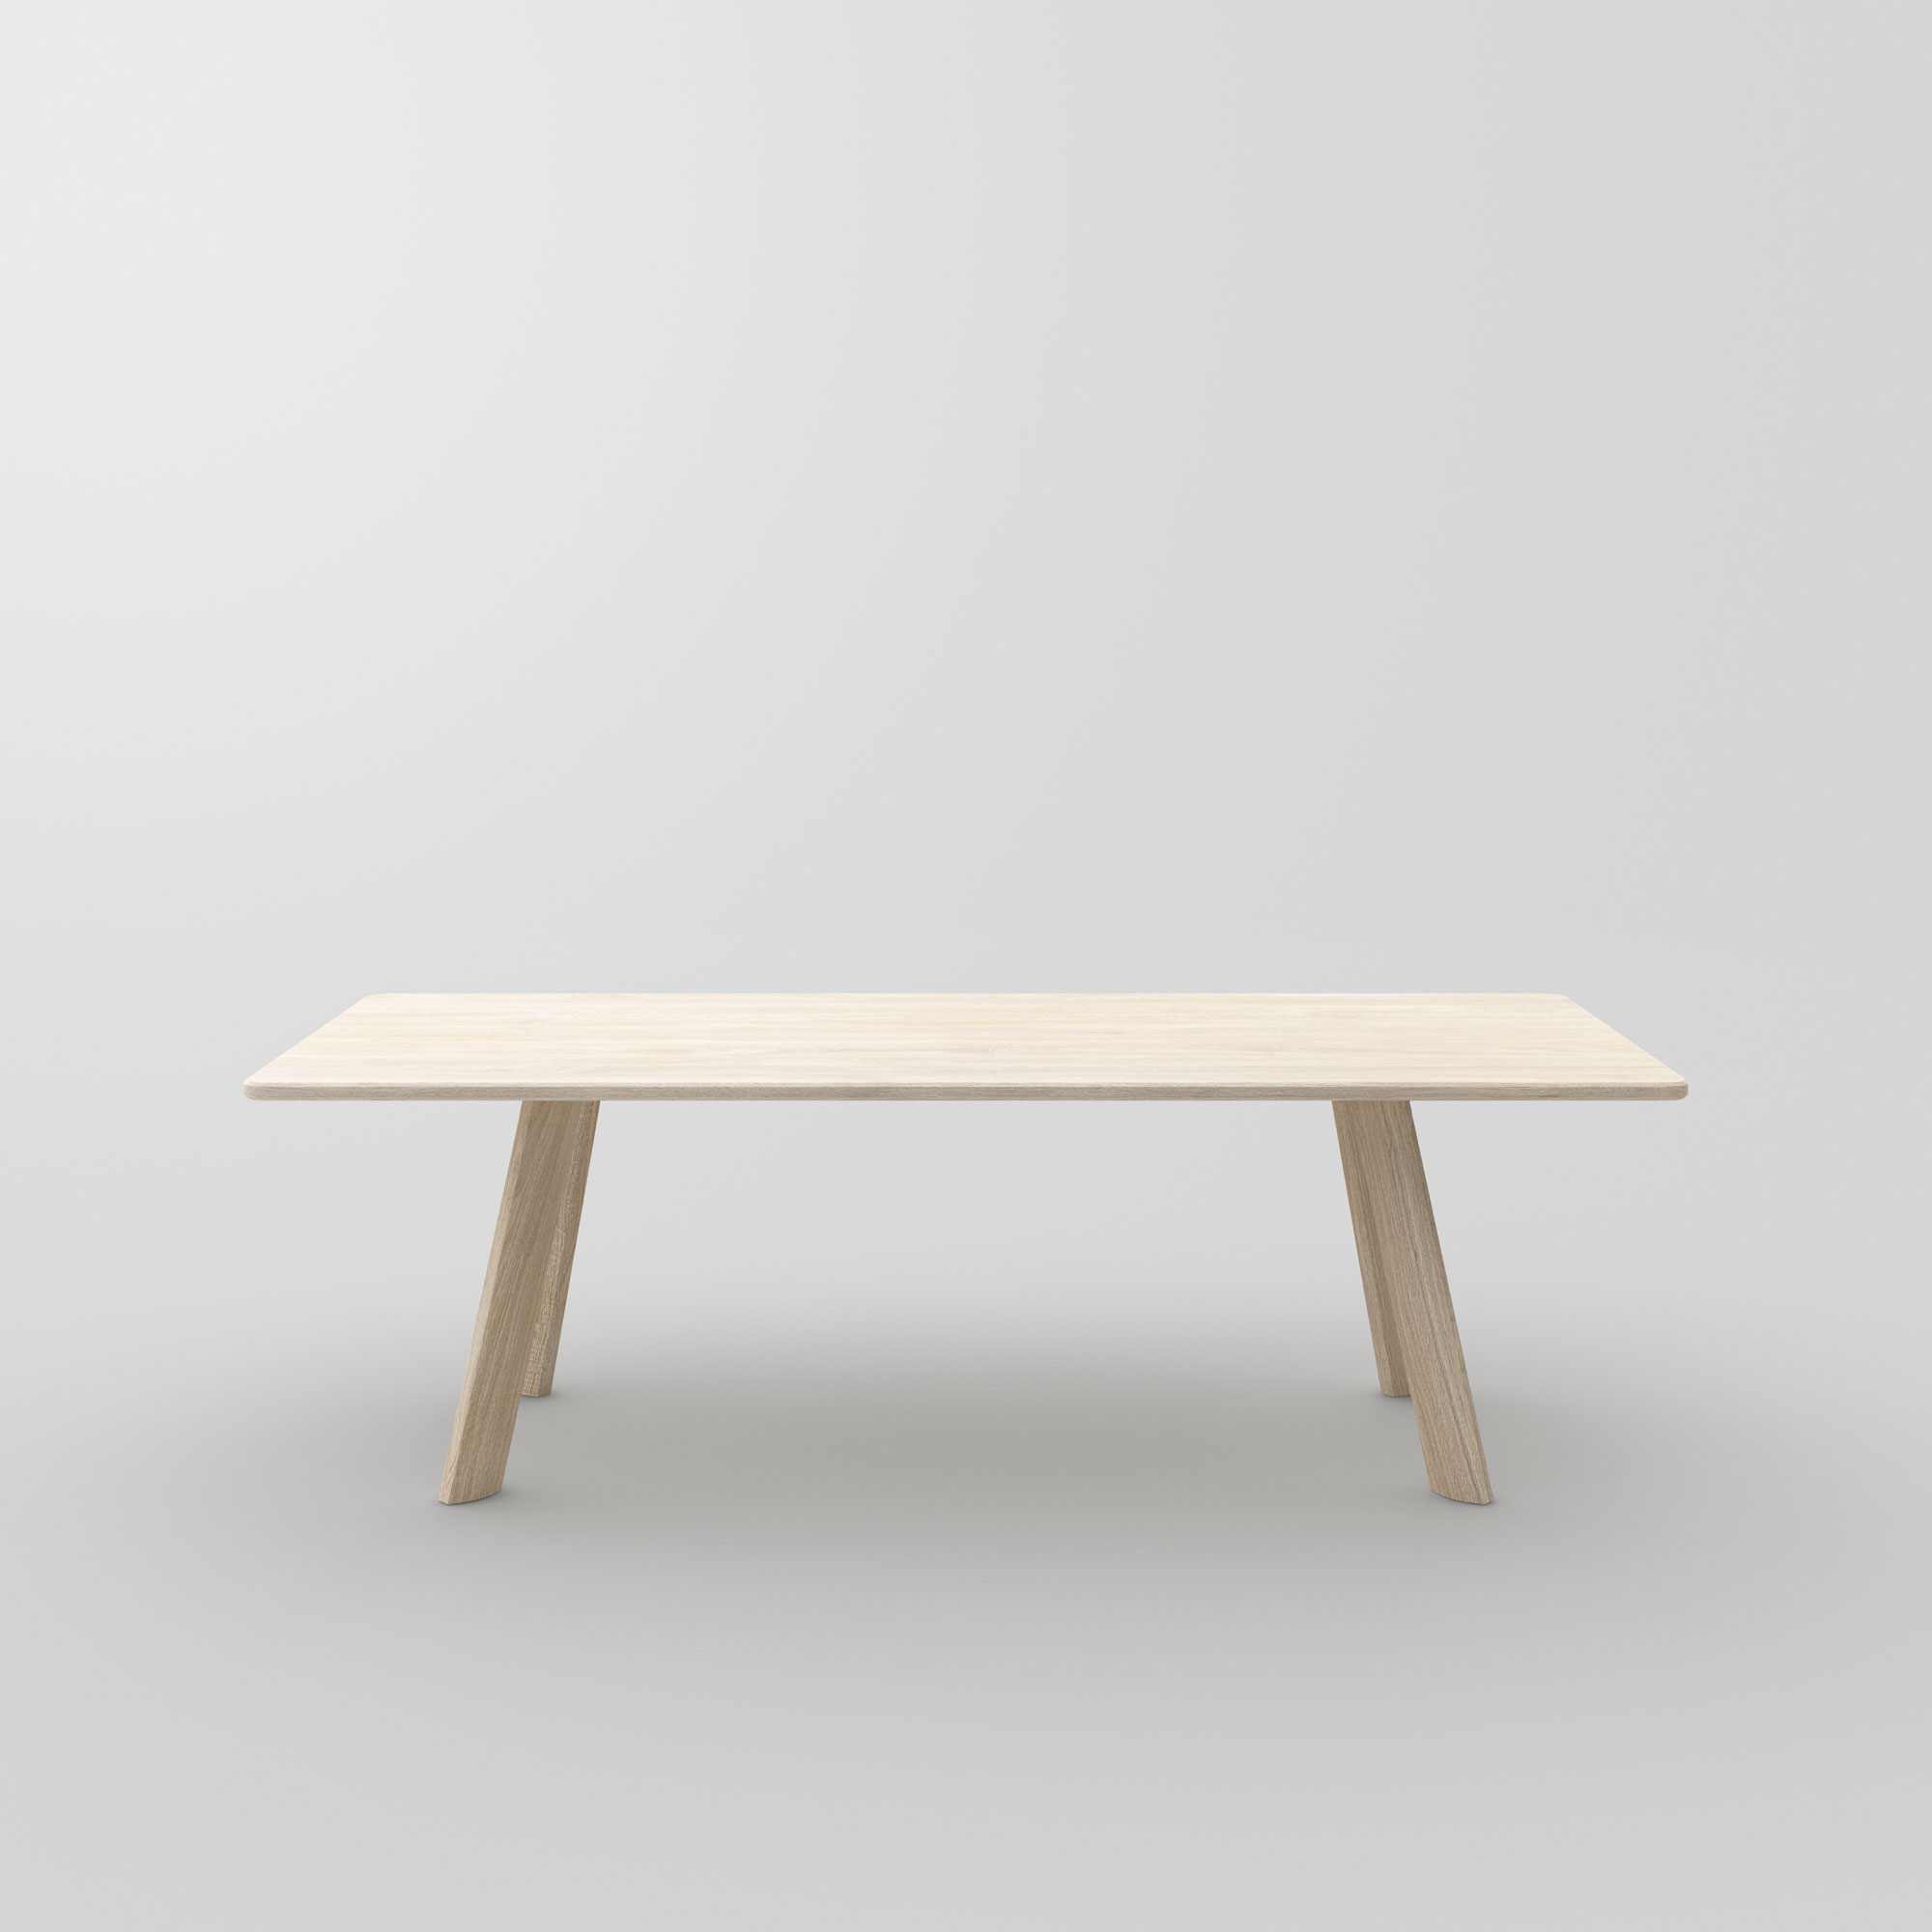 Designer Dining Table LARGUS cam3 custom made in solid wood by vitamin design